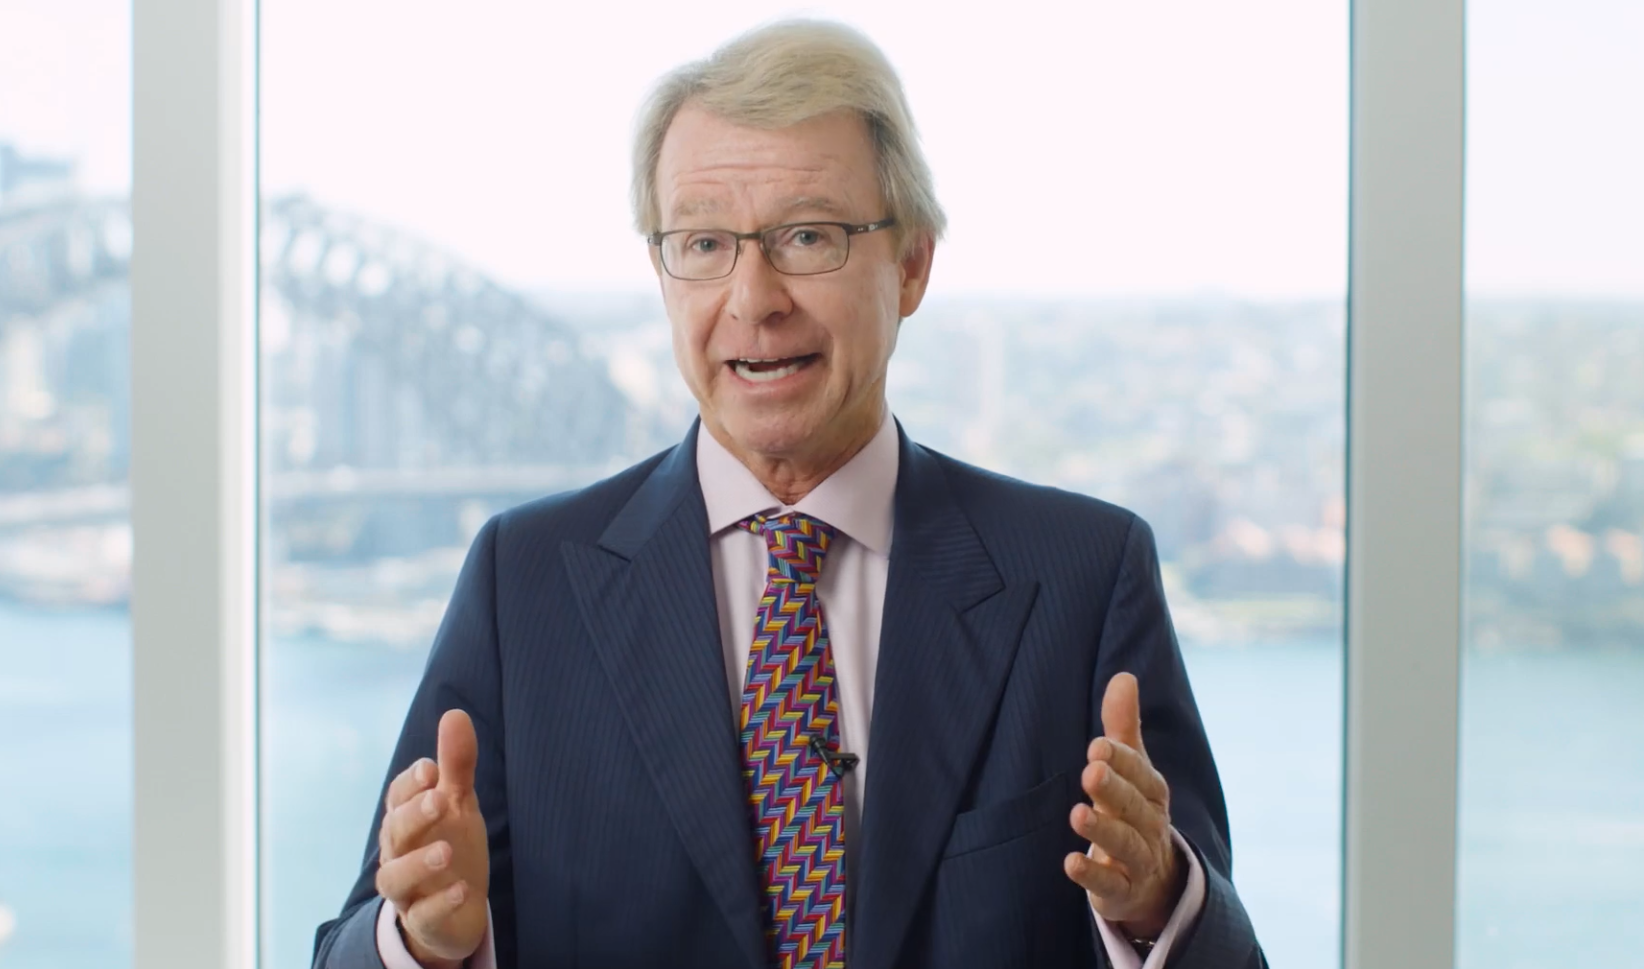 AMP Capital economist Shane Oliver says property investors should remain wary of Sydney and Melbourne for now and focus on higher yielding markets.